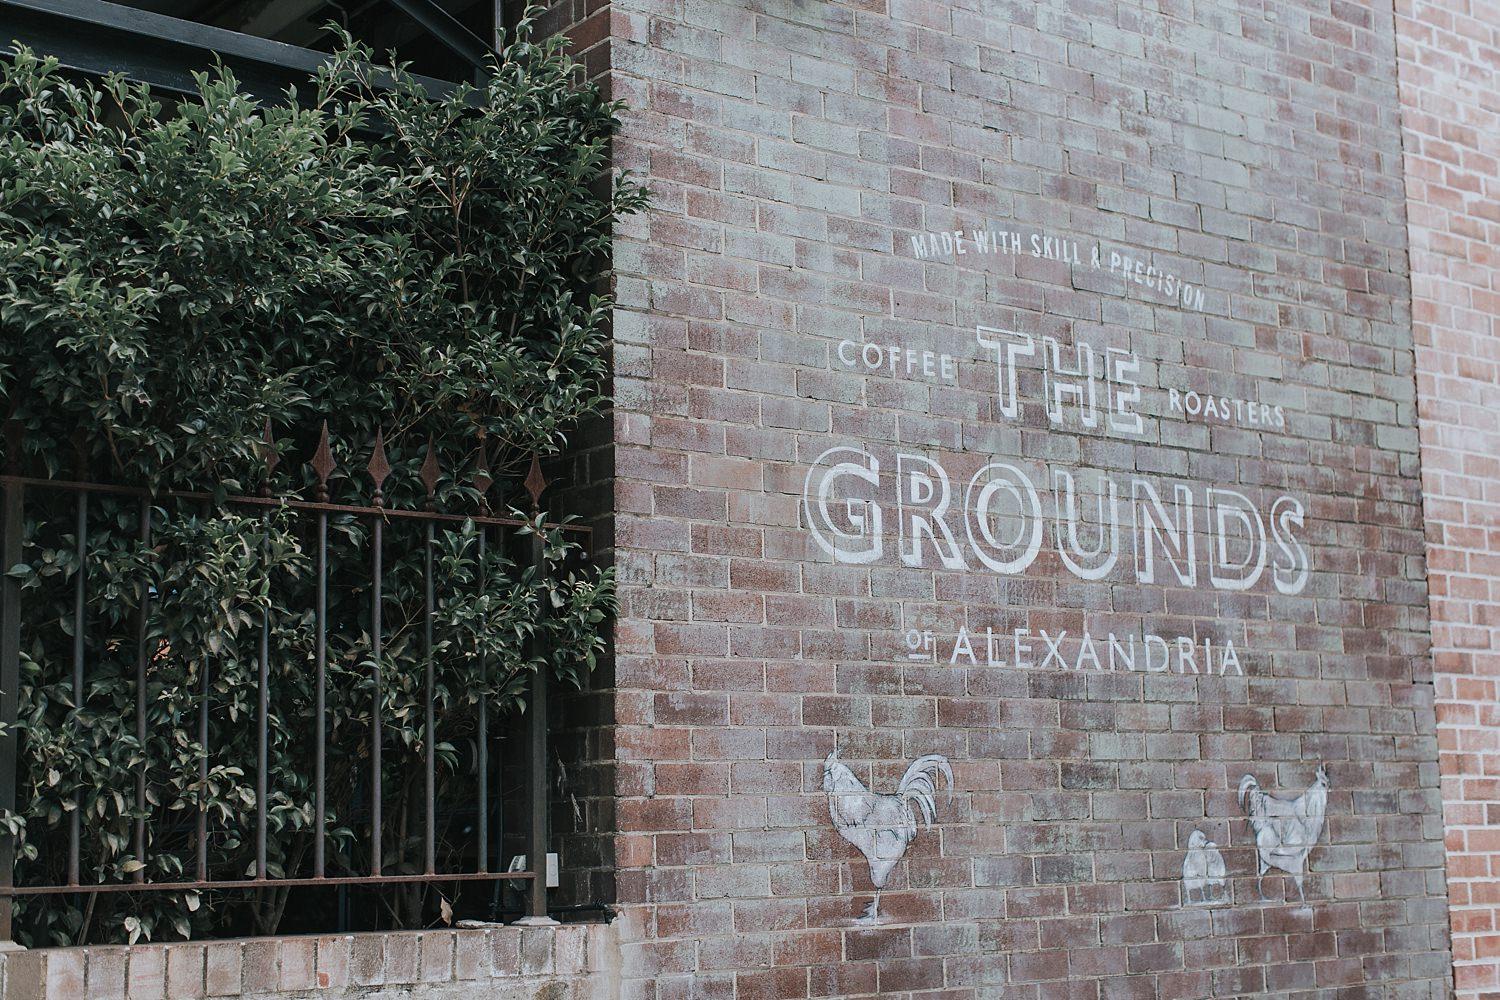 the grounds of alexandria outside hunter st